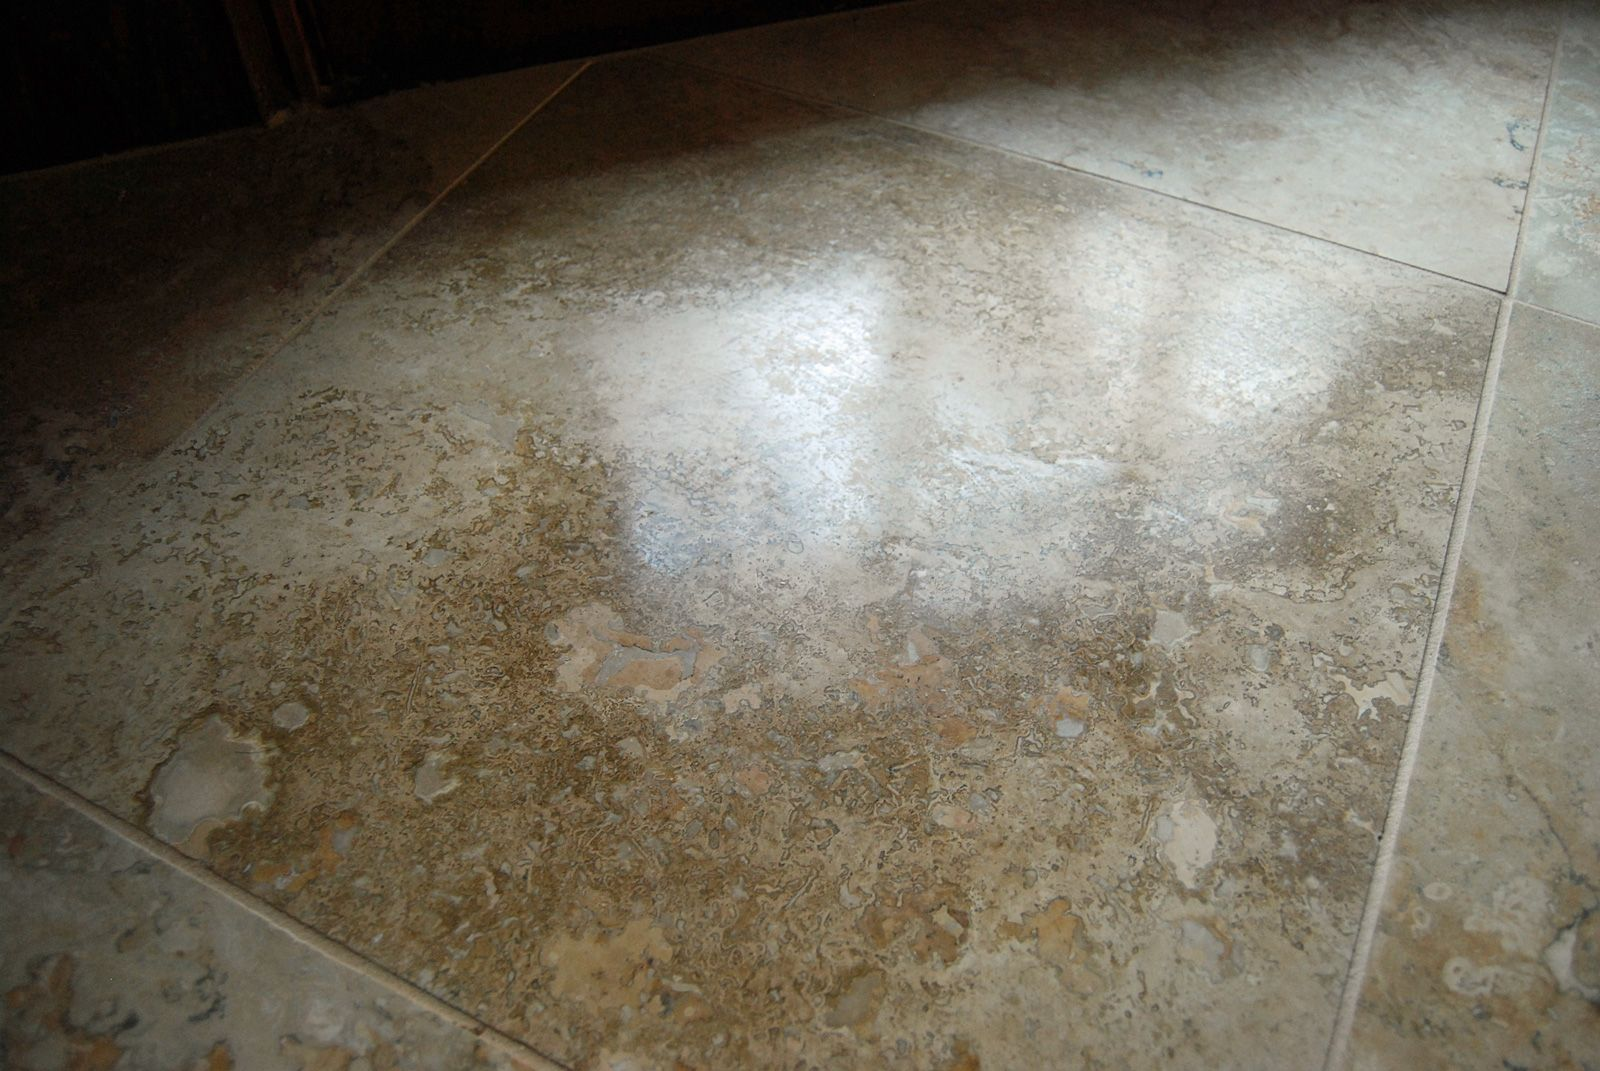 Travertine Floor Cleaner Ah Travertine You Are So Pretty But